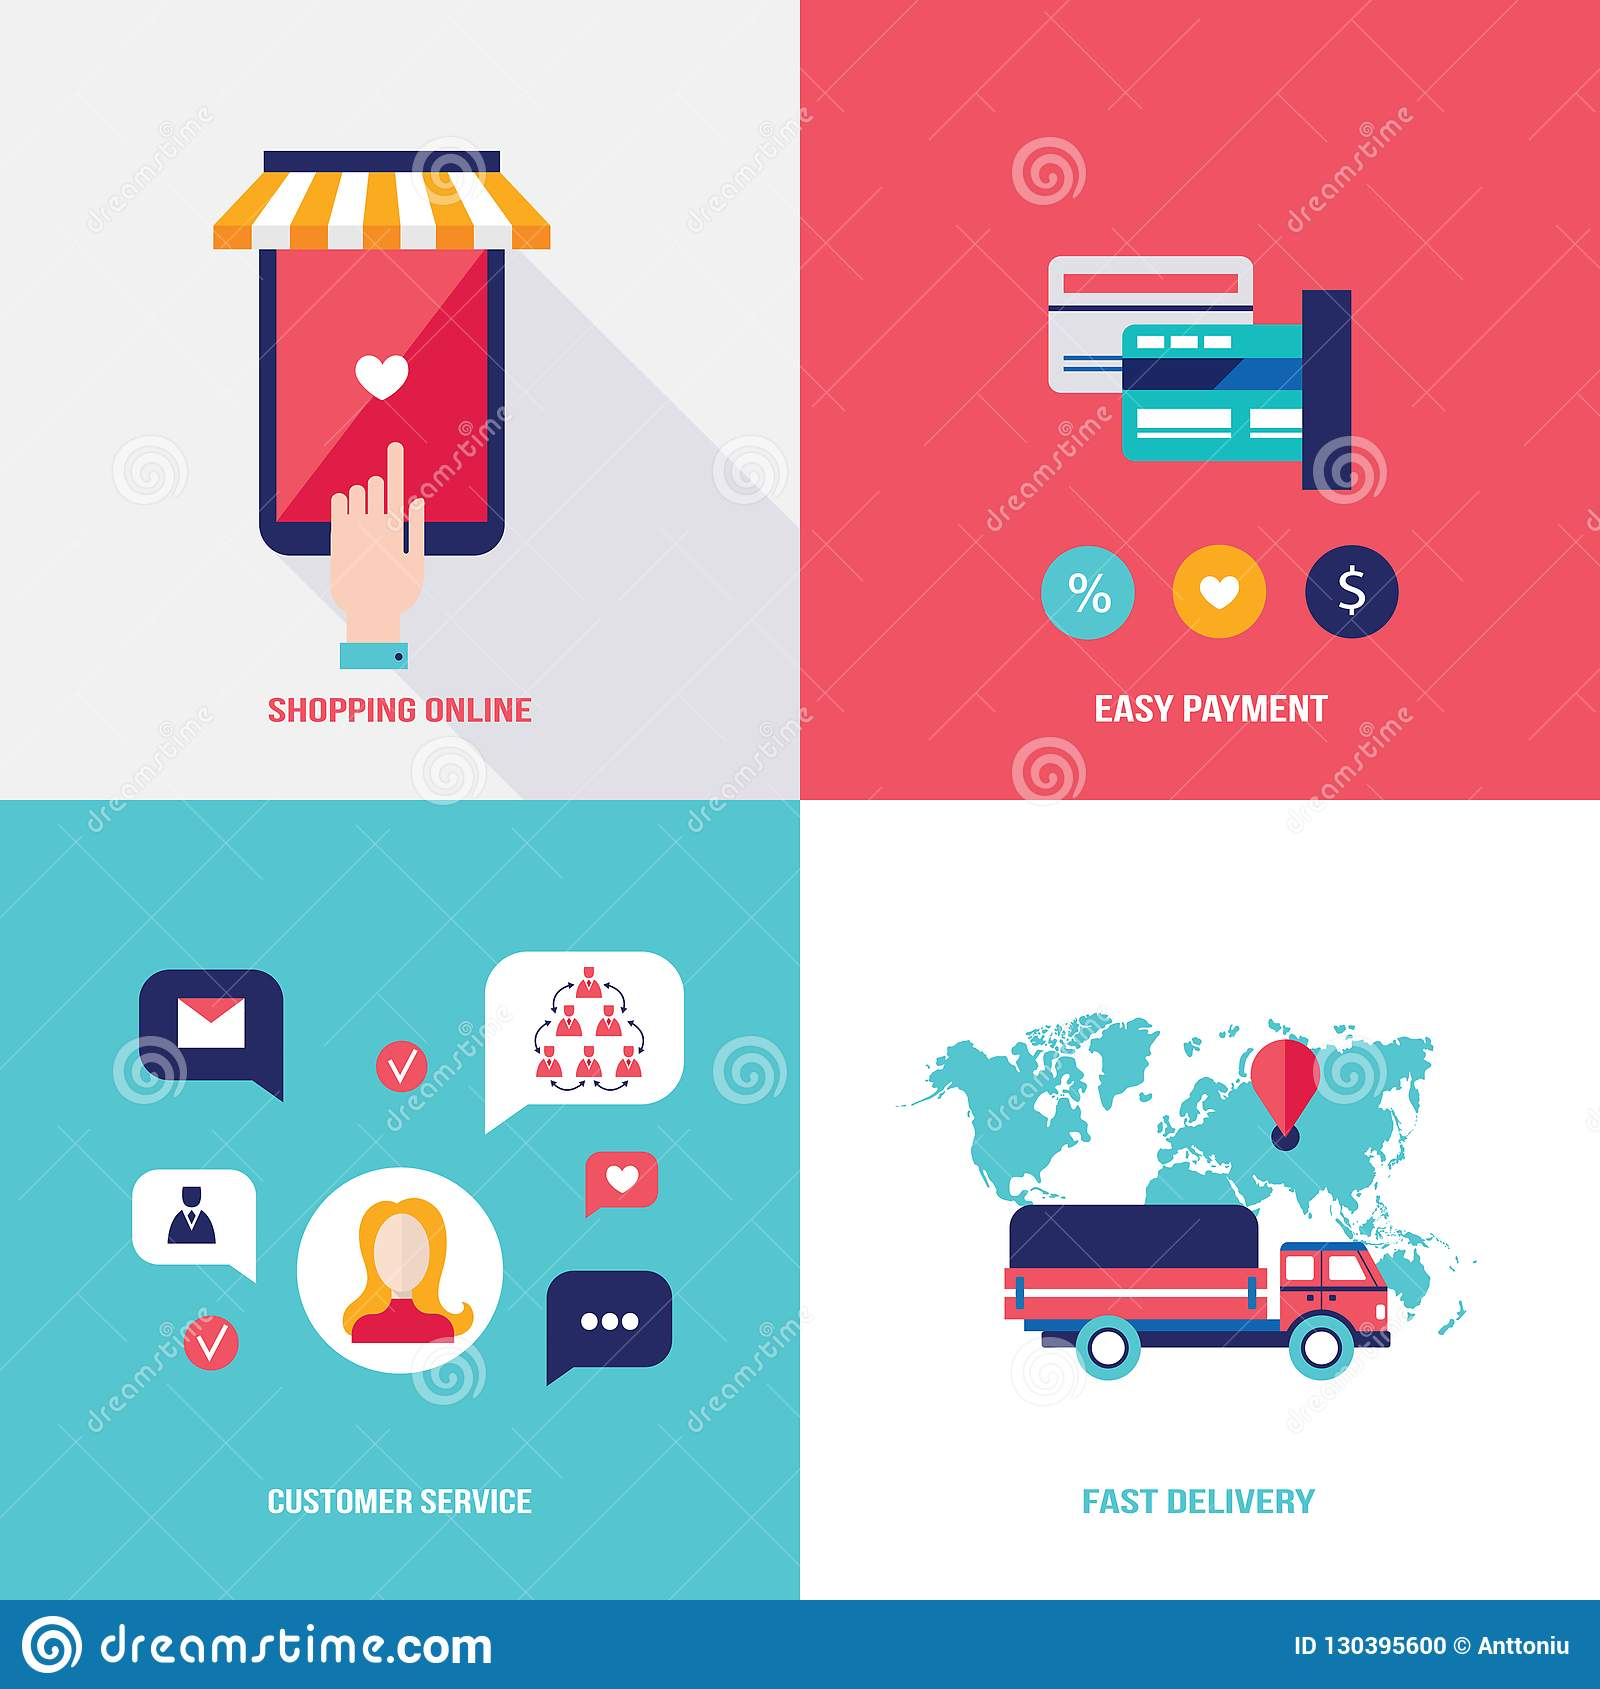 Design Shop Online Shop Online Set Of Flat Design Icons For Your Business Shopping